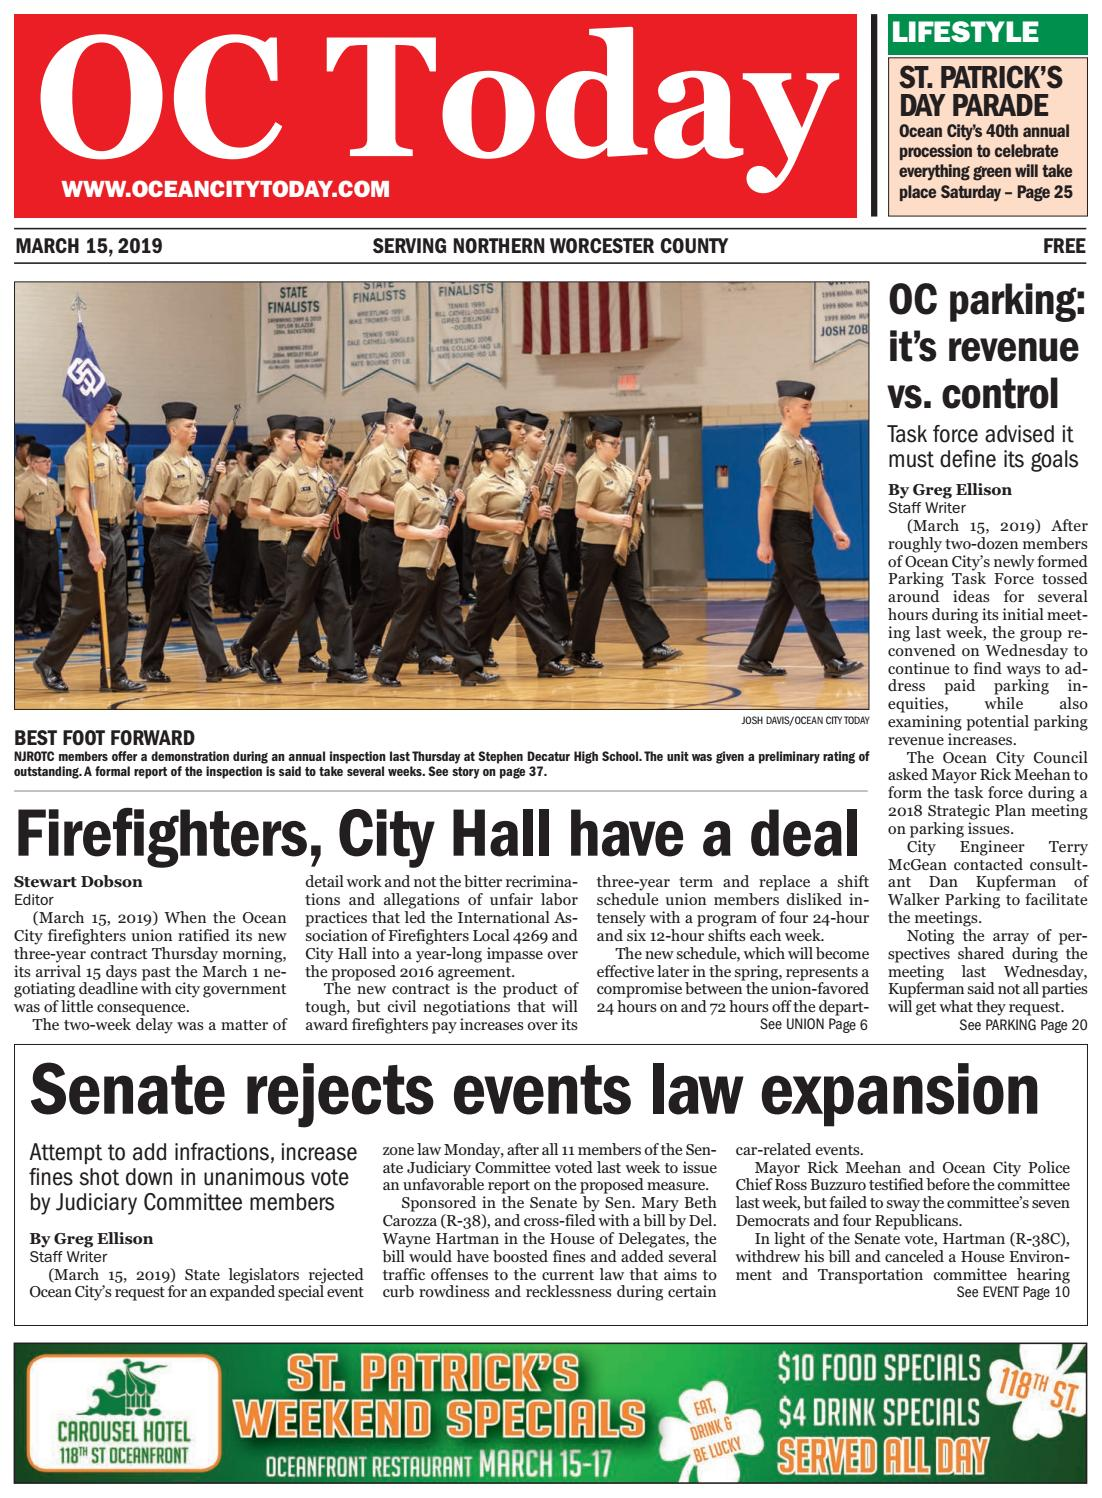 3/15/19 Ocean City Today by ocean city today - issuu